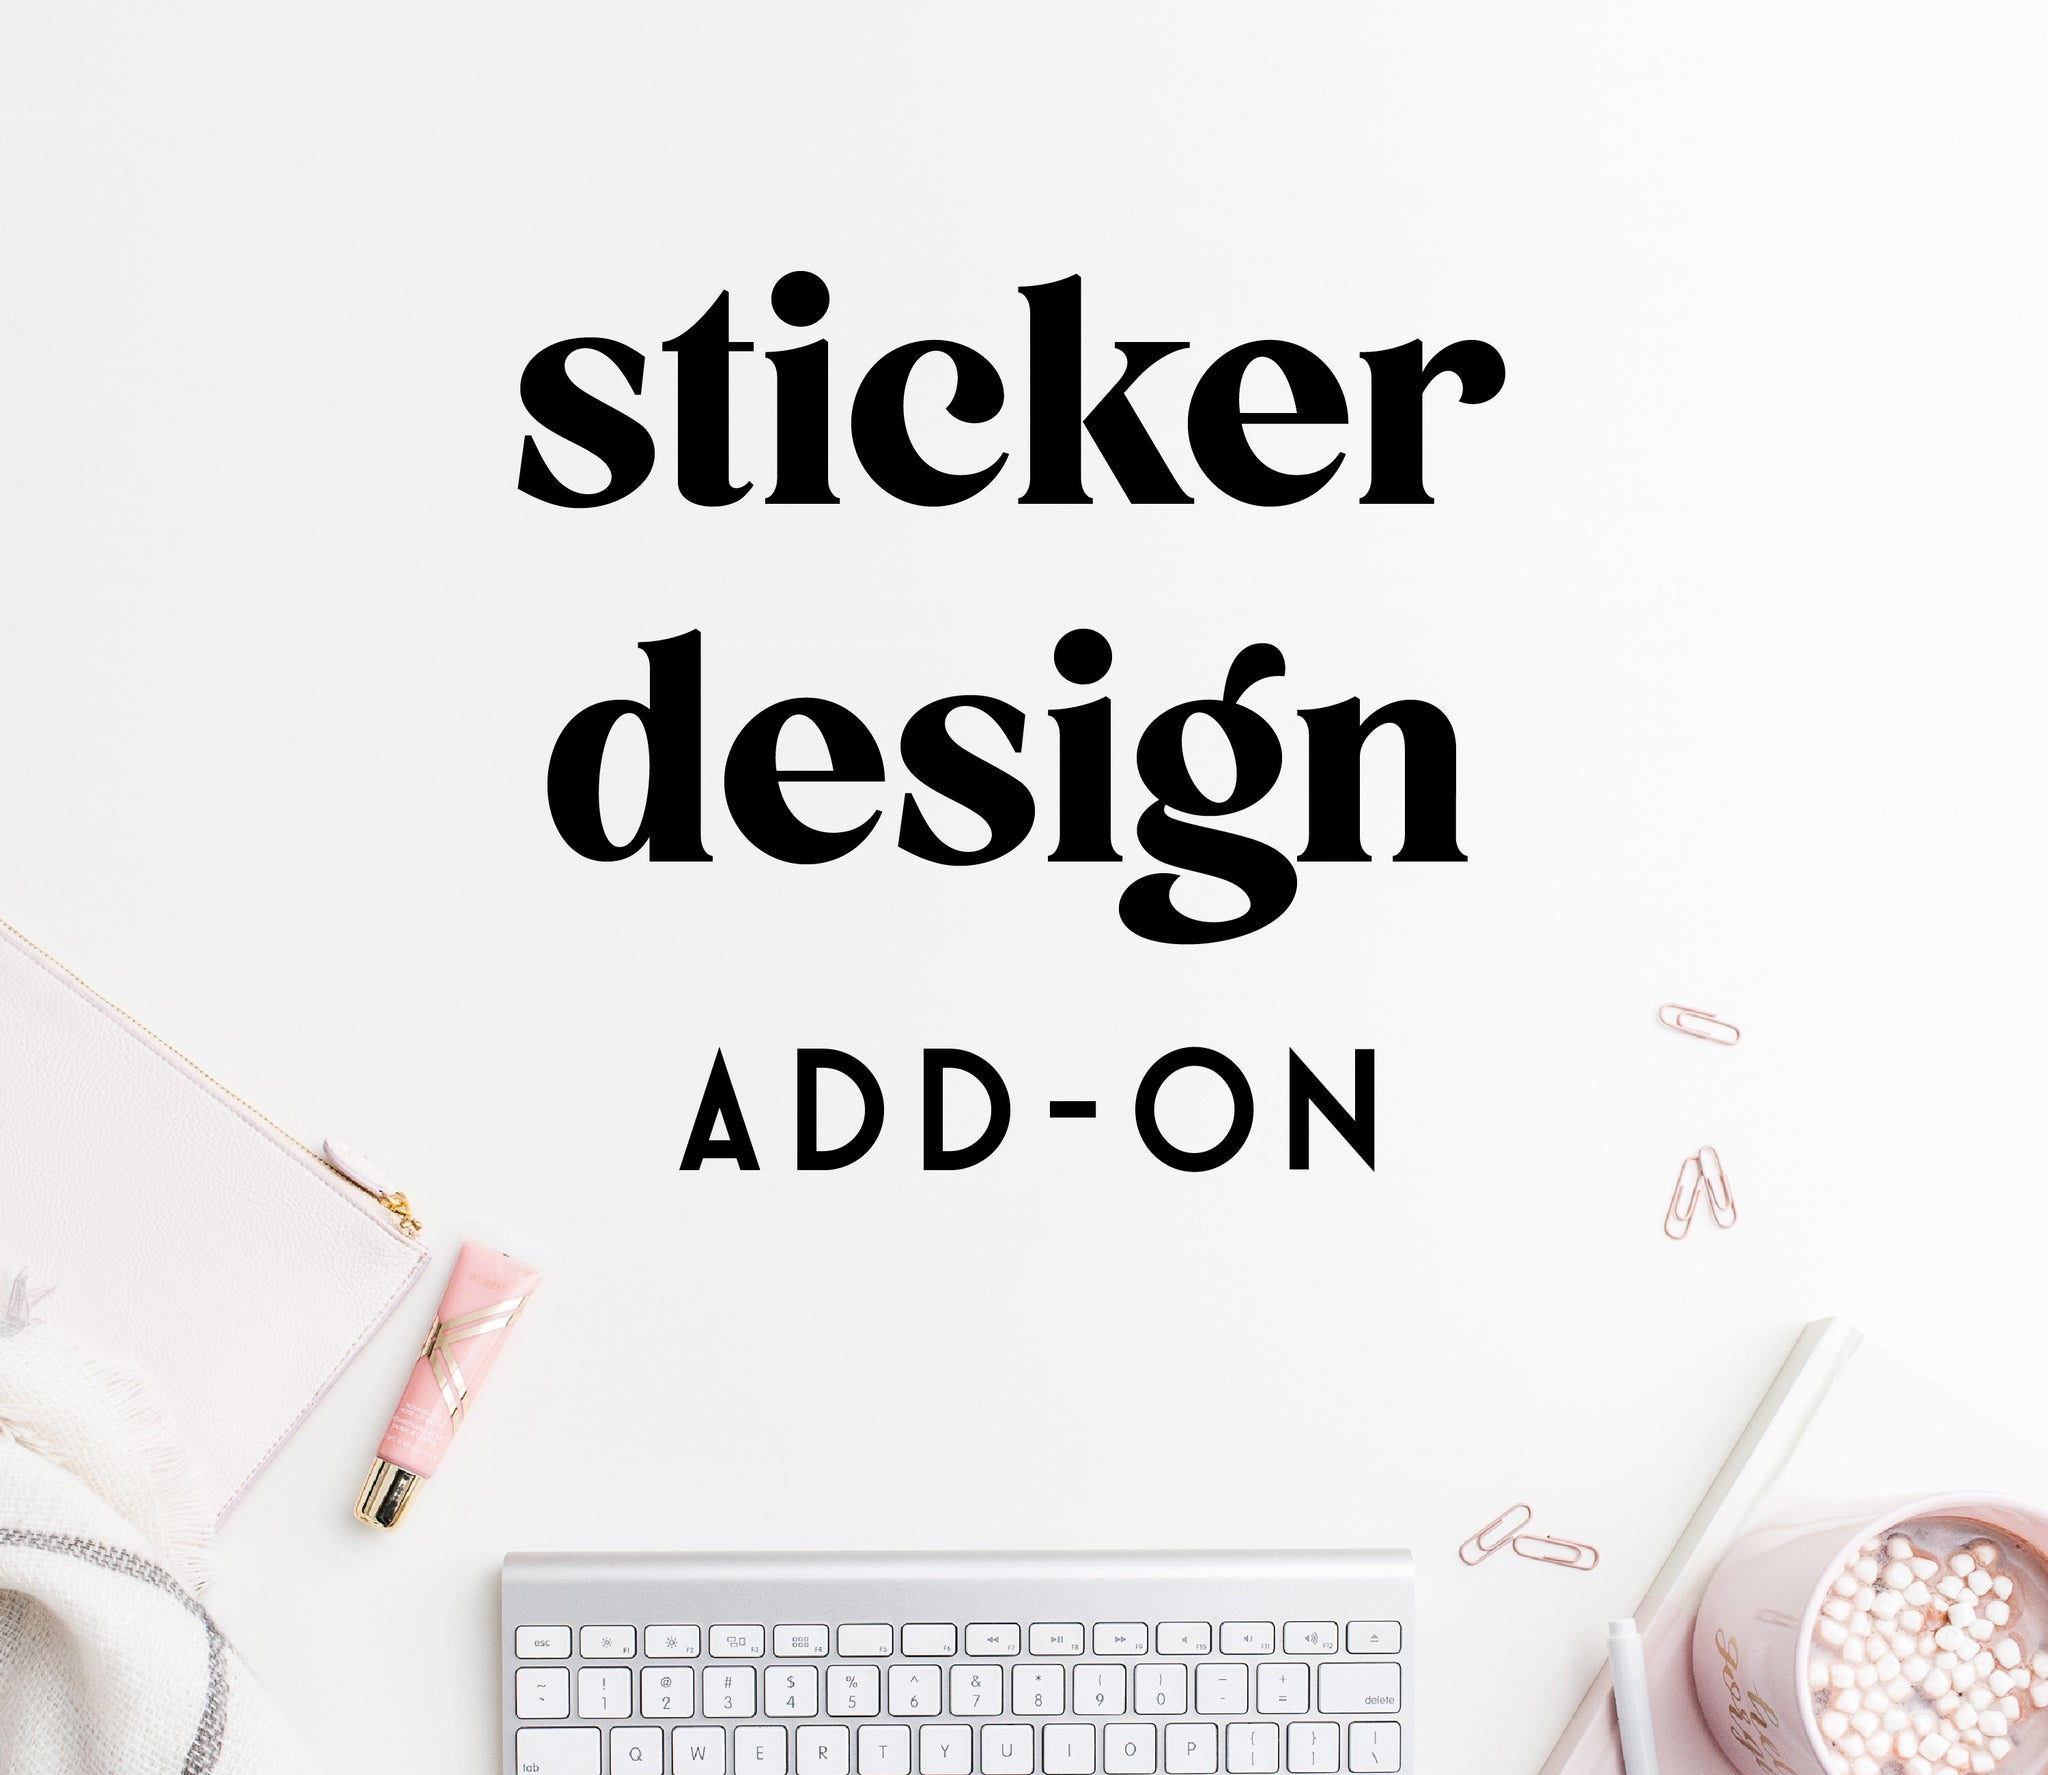 ADD-ON: sticker